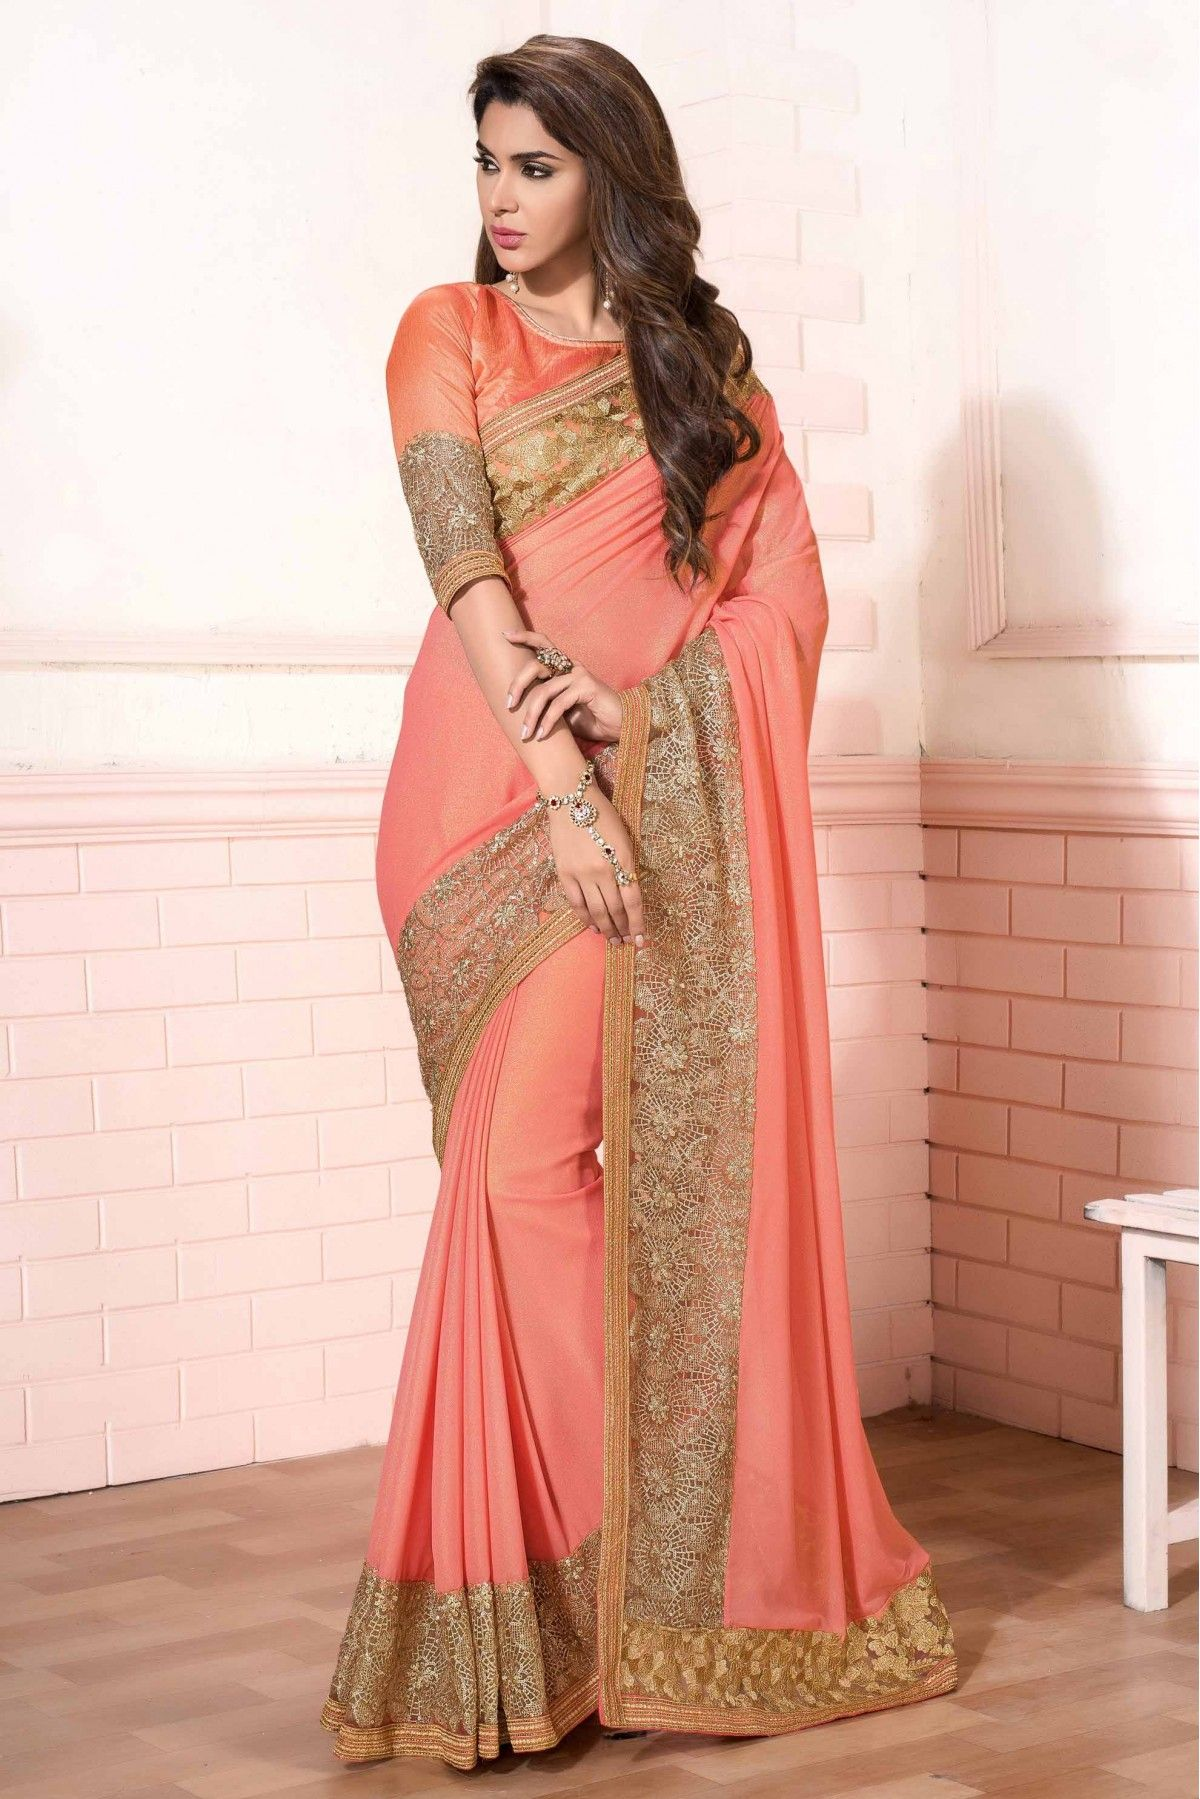 a5daa8b76e Georgette Designer Saree in Peach Colour.It comes with matching Blouse.It  is crafted with Lace Work,Embroidery Design.